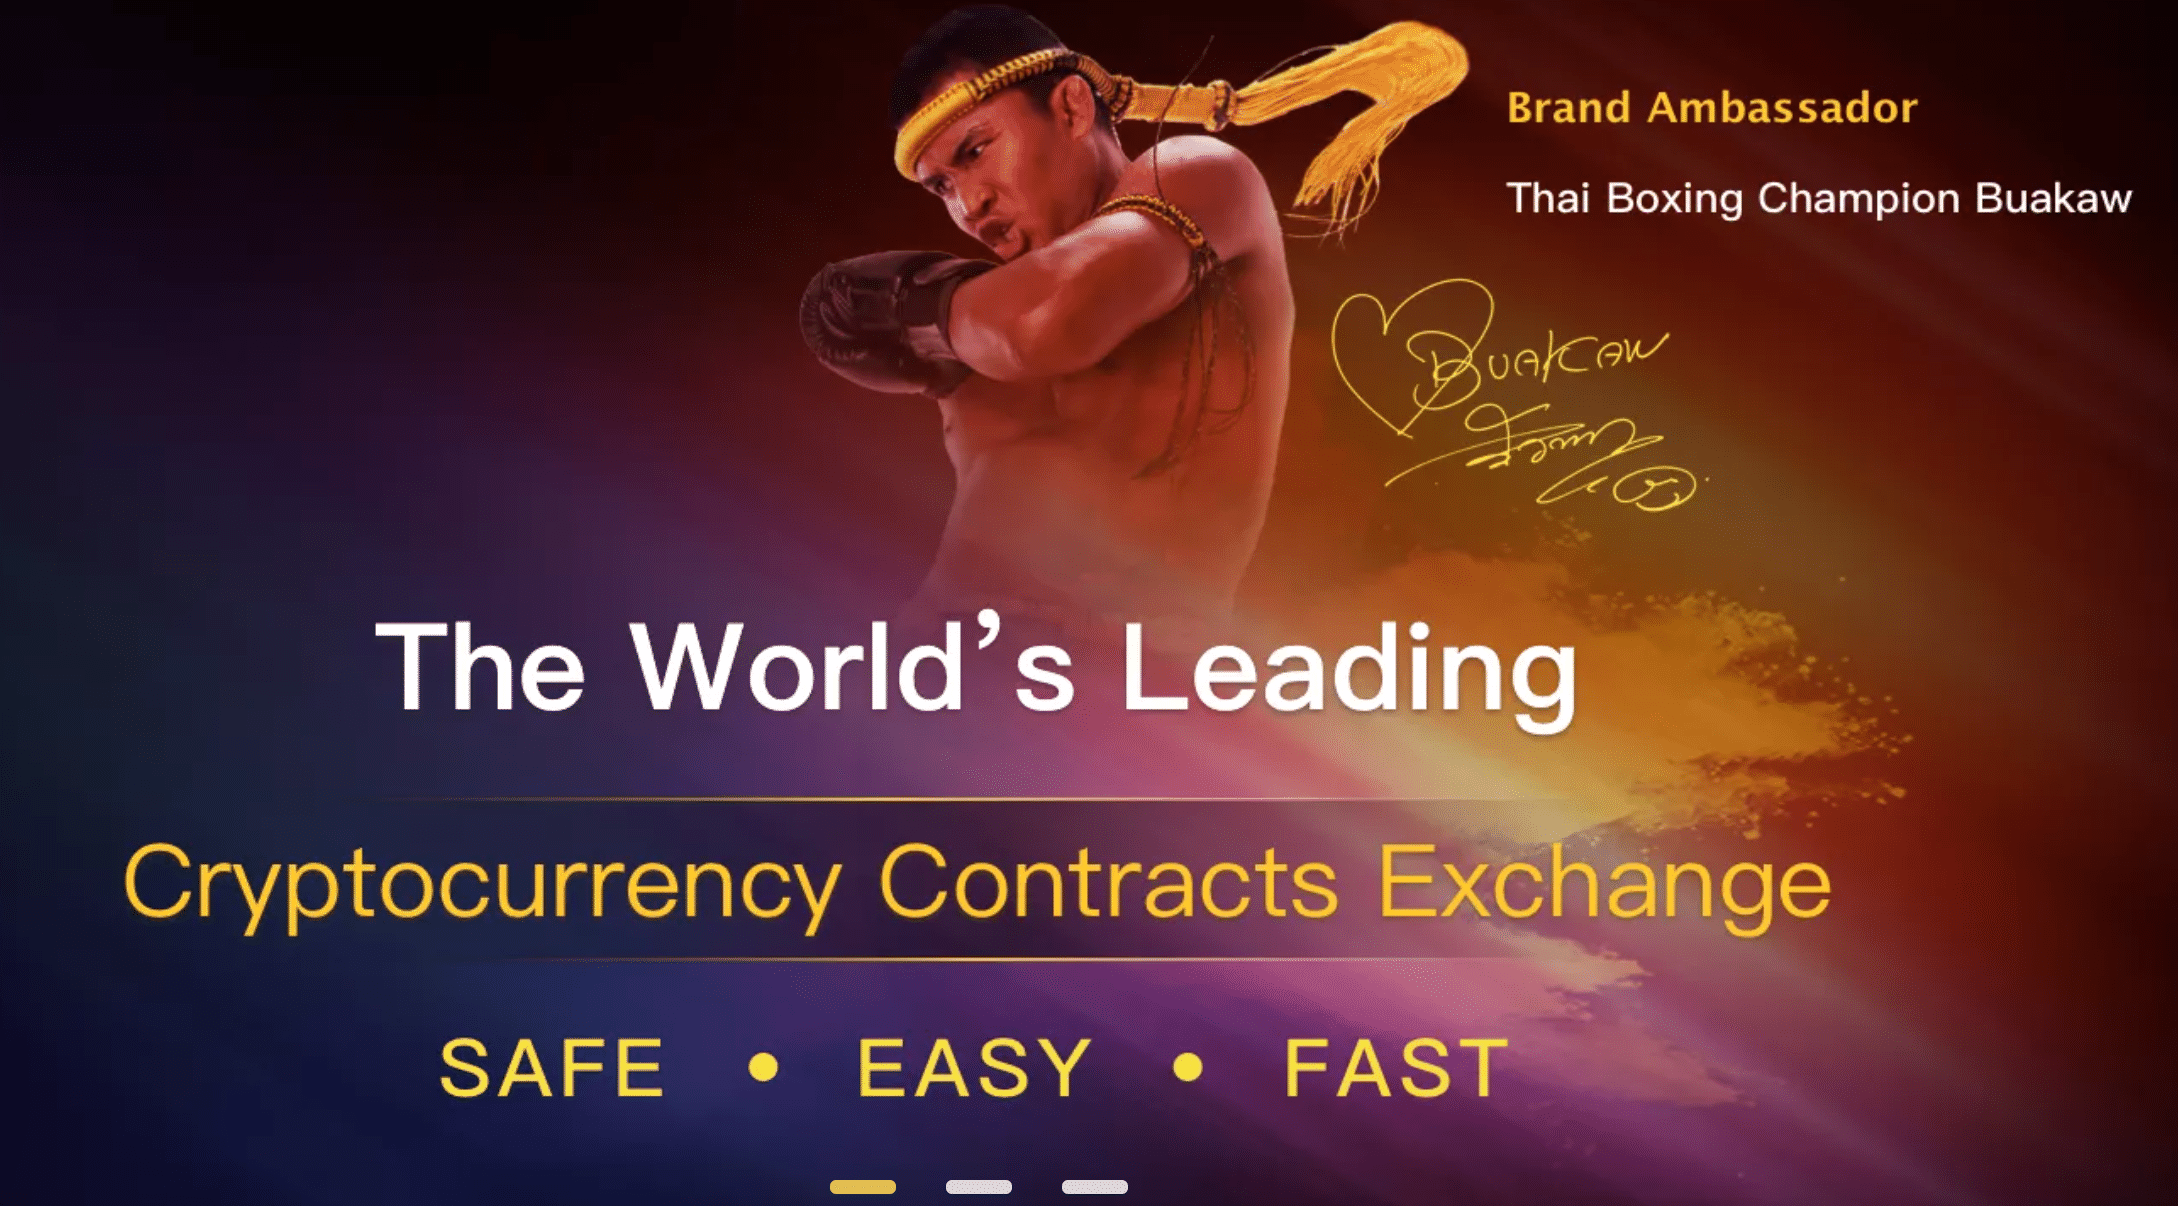 Cryptocurrency option exchange Bityard's home page, feature Buakaw